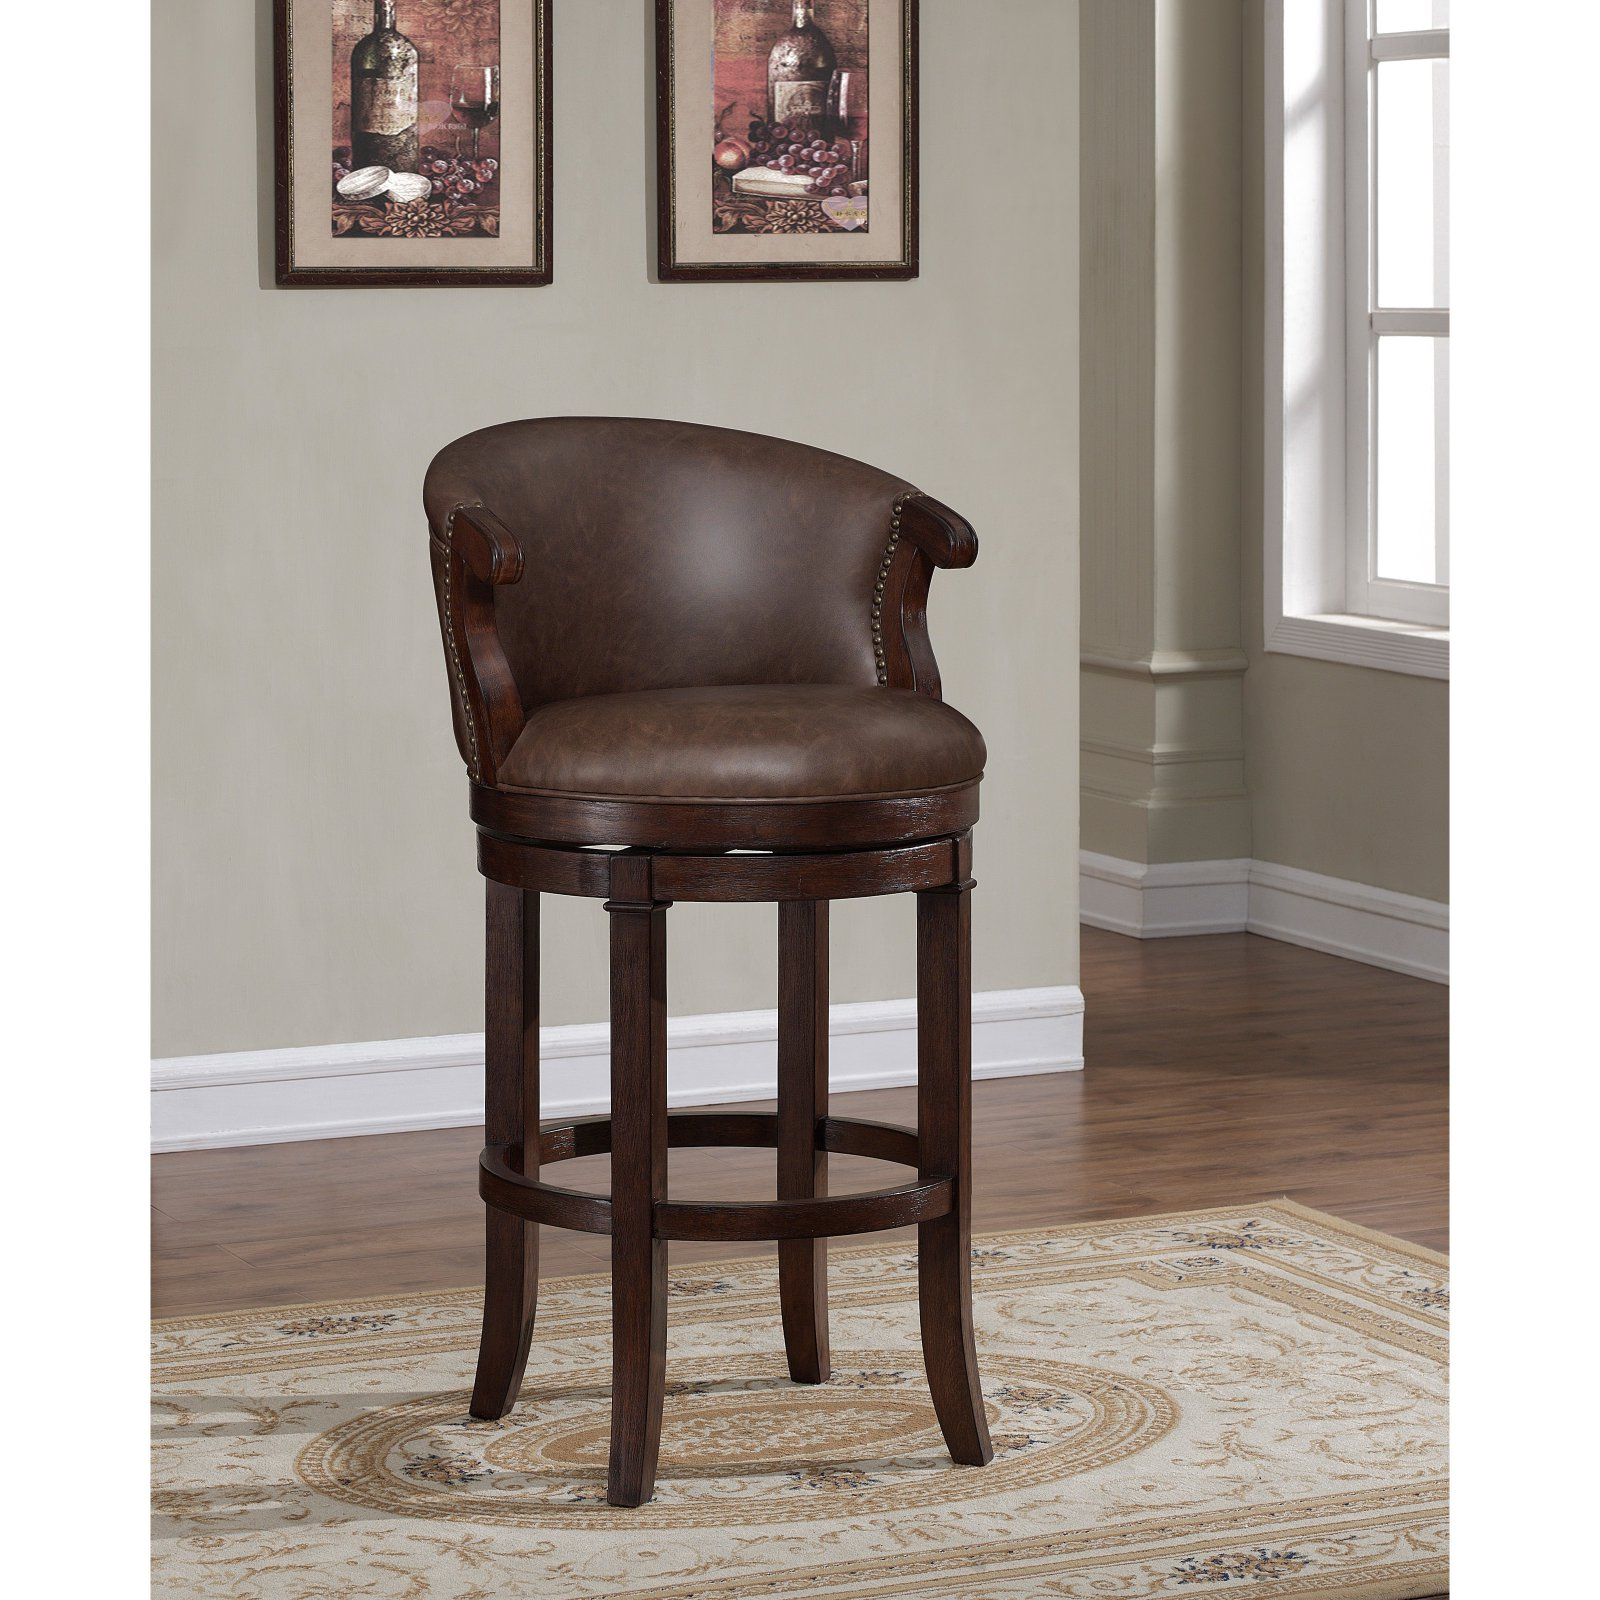 American Woodcrafters Mirelle 26 in. Swivel Counter Stool